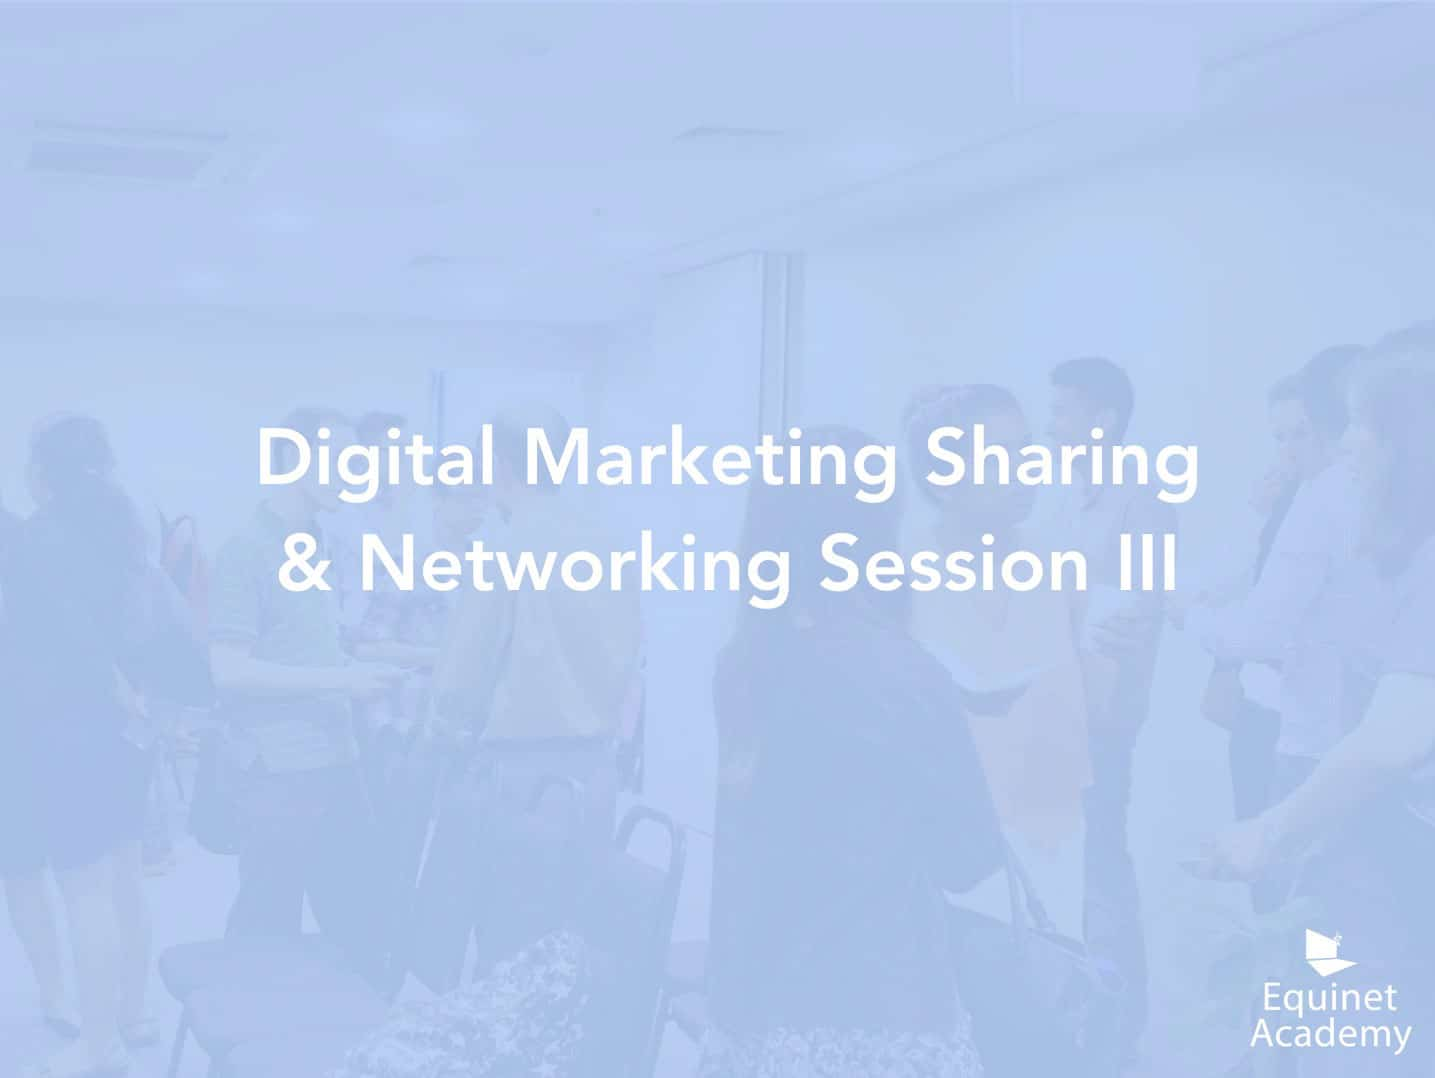 Digital Marketing Sharing and Networking Session III